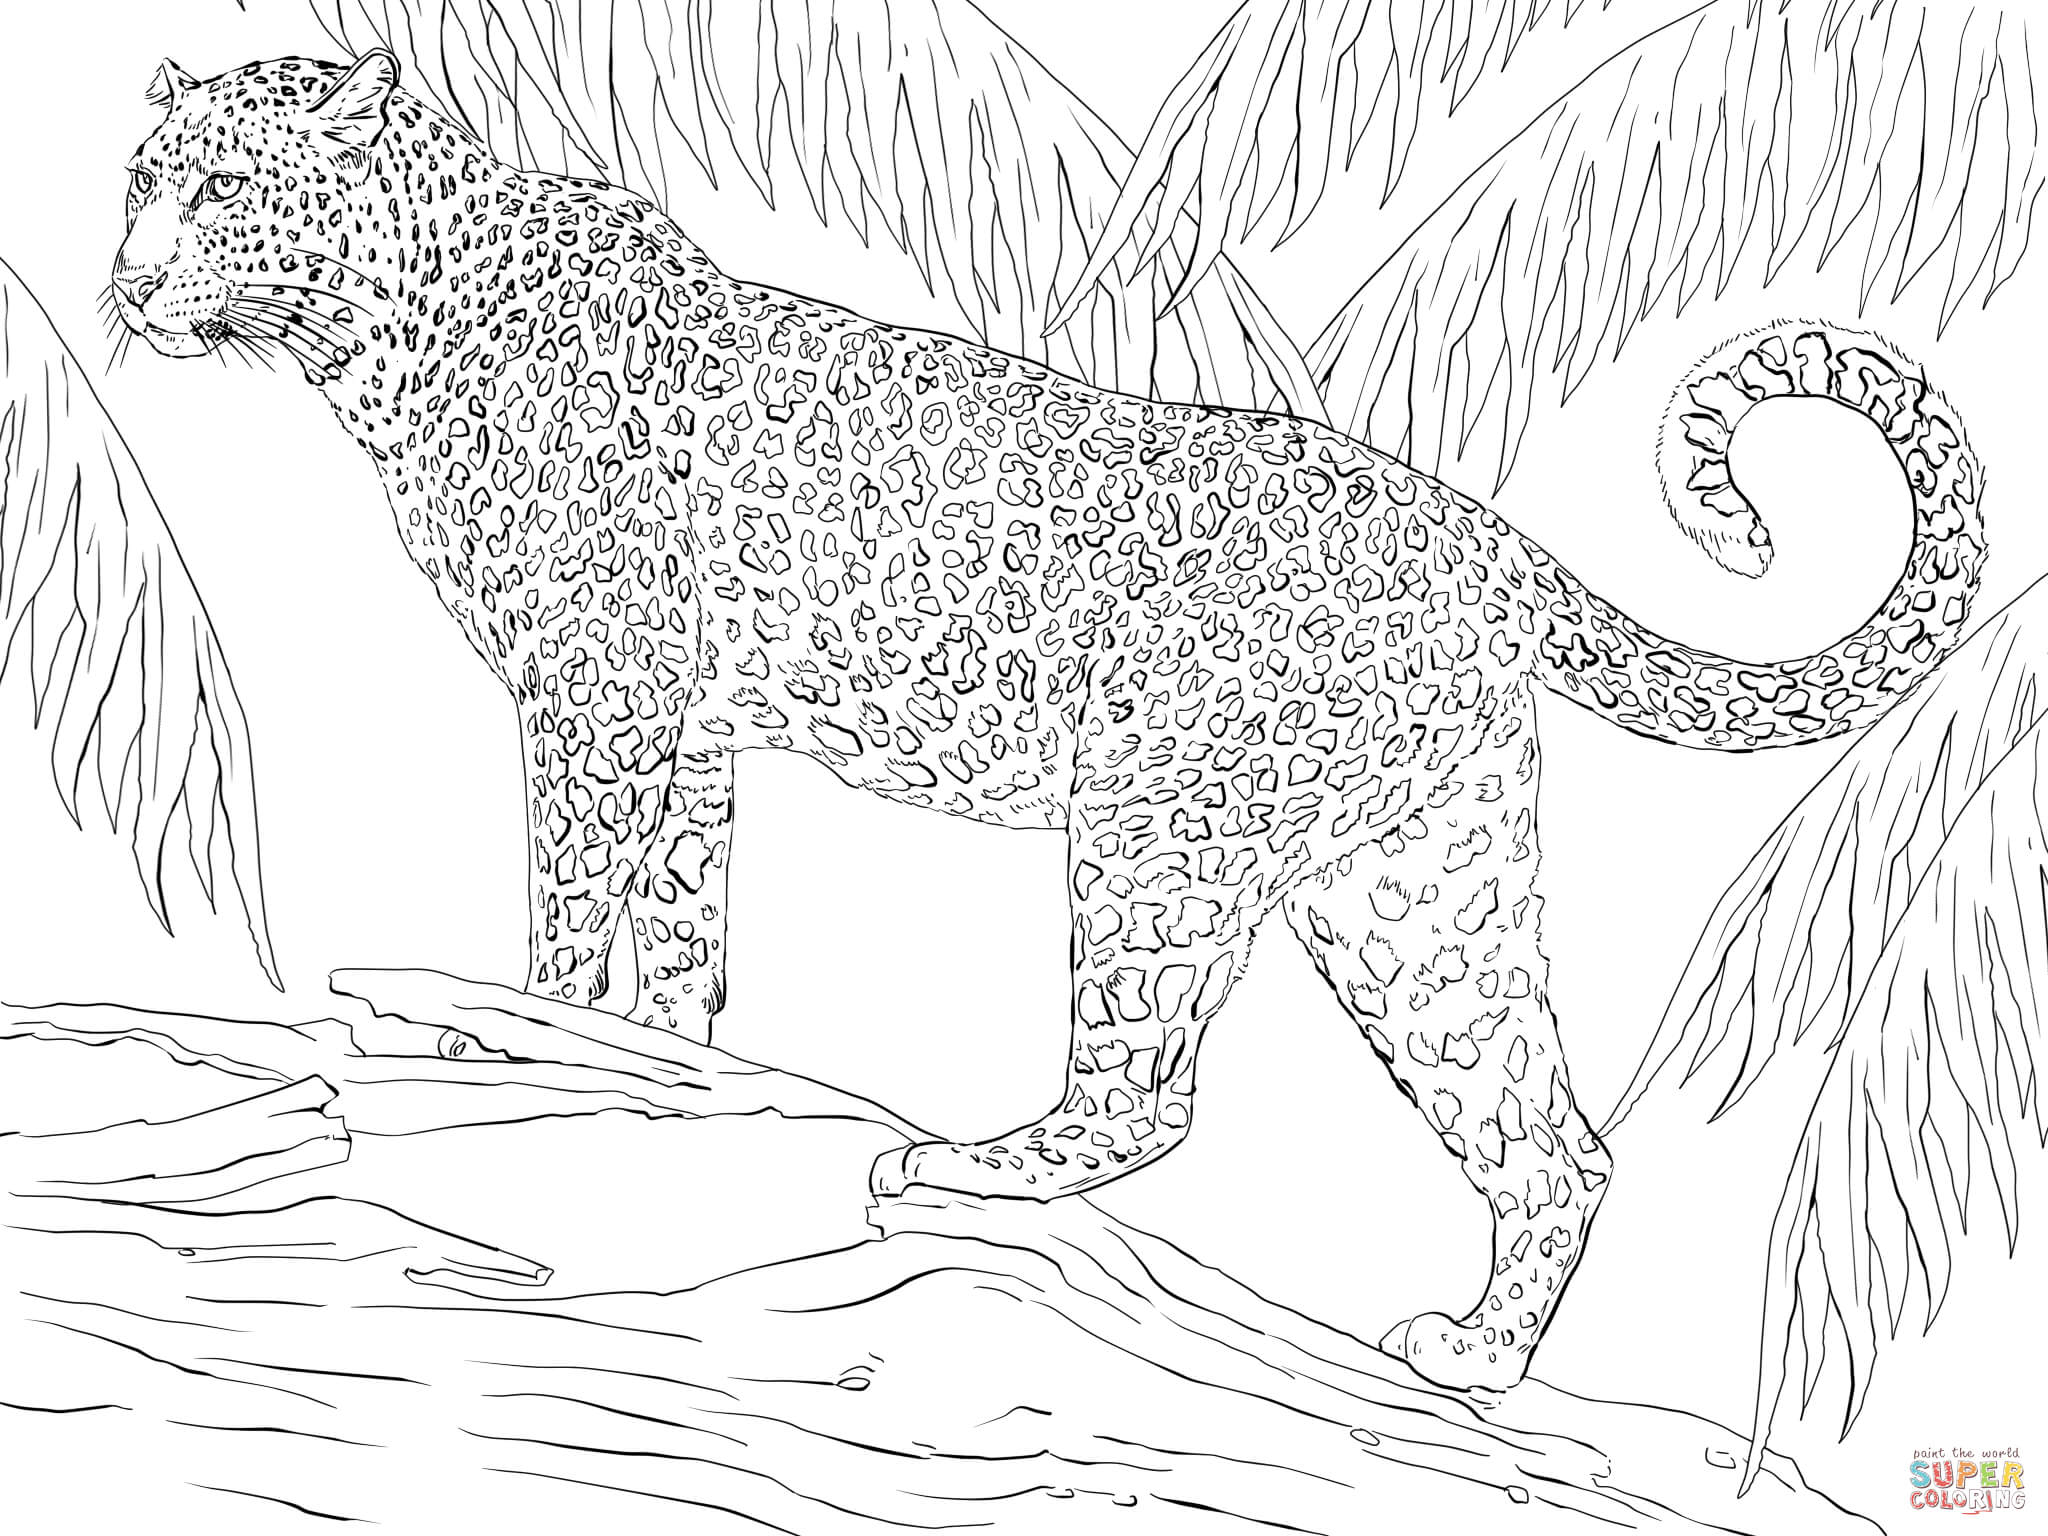 Coati coloring #5, Download drawings